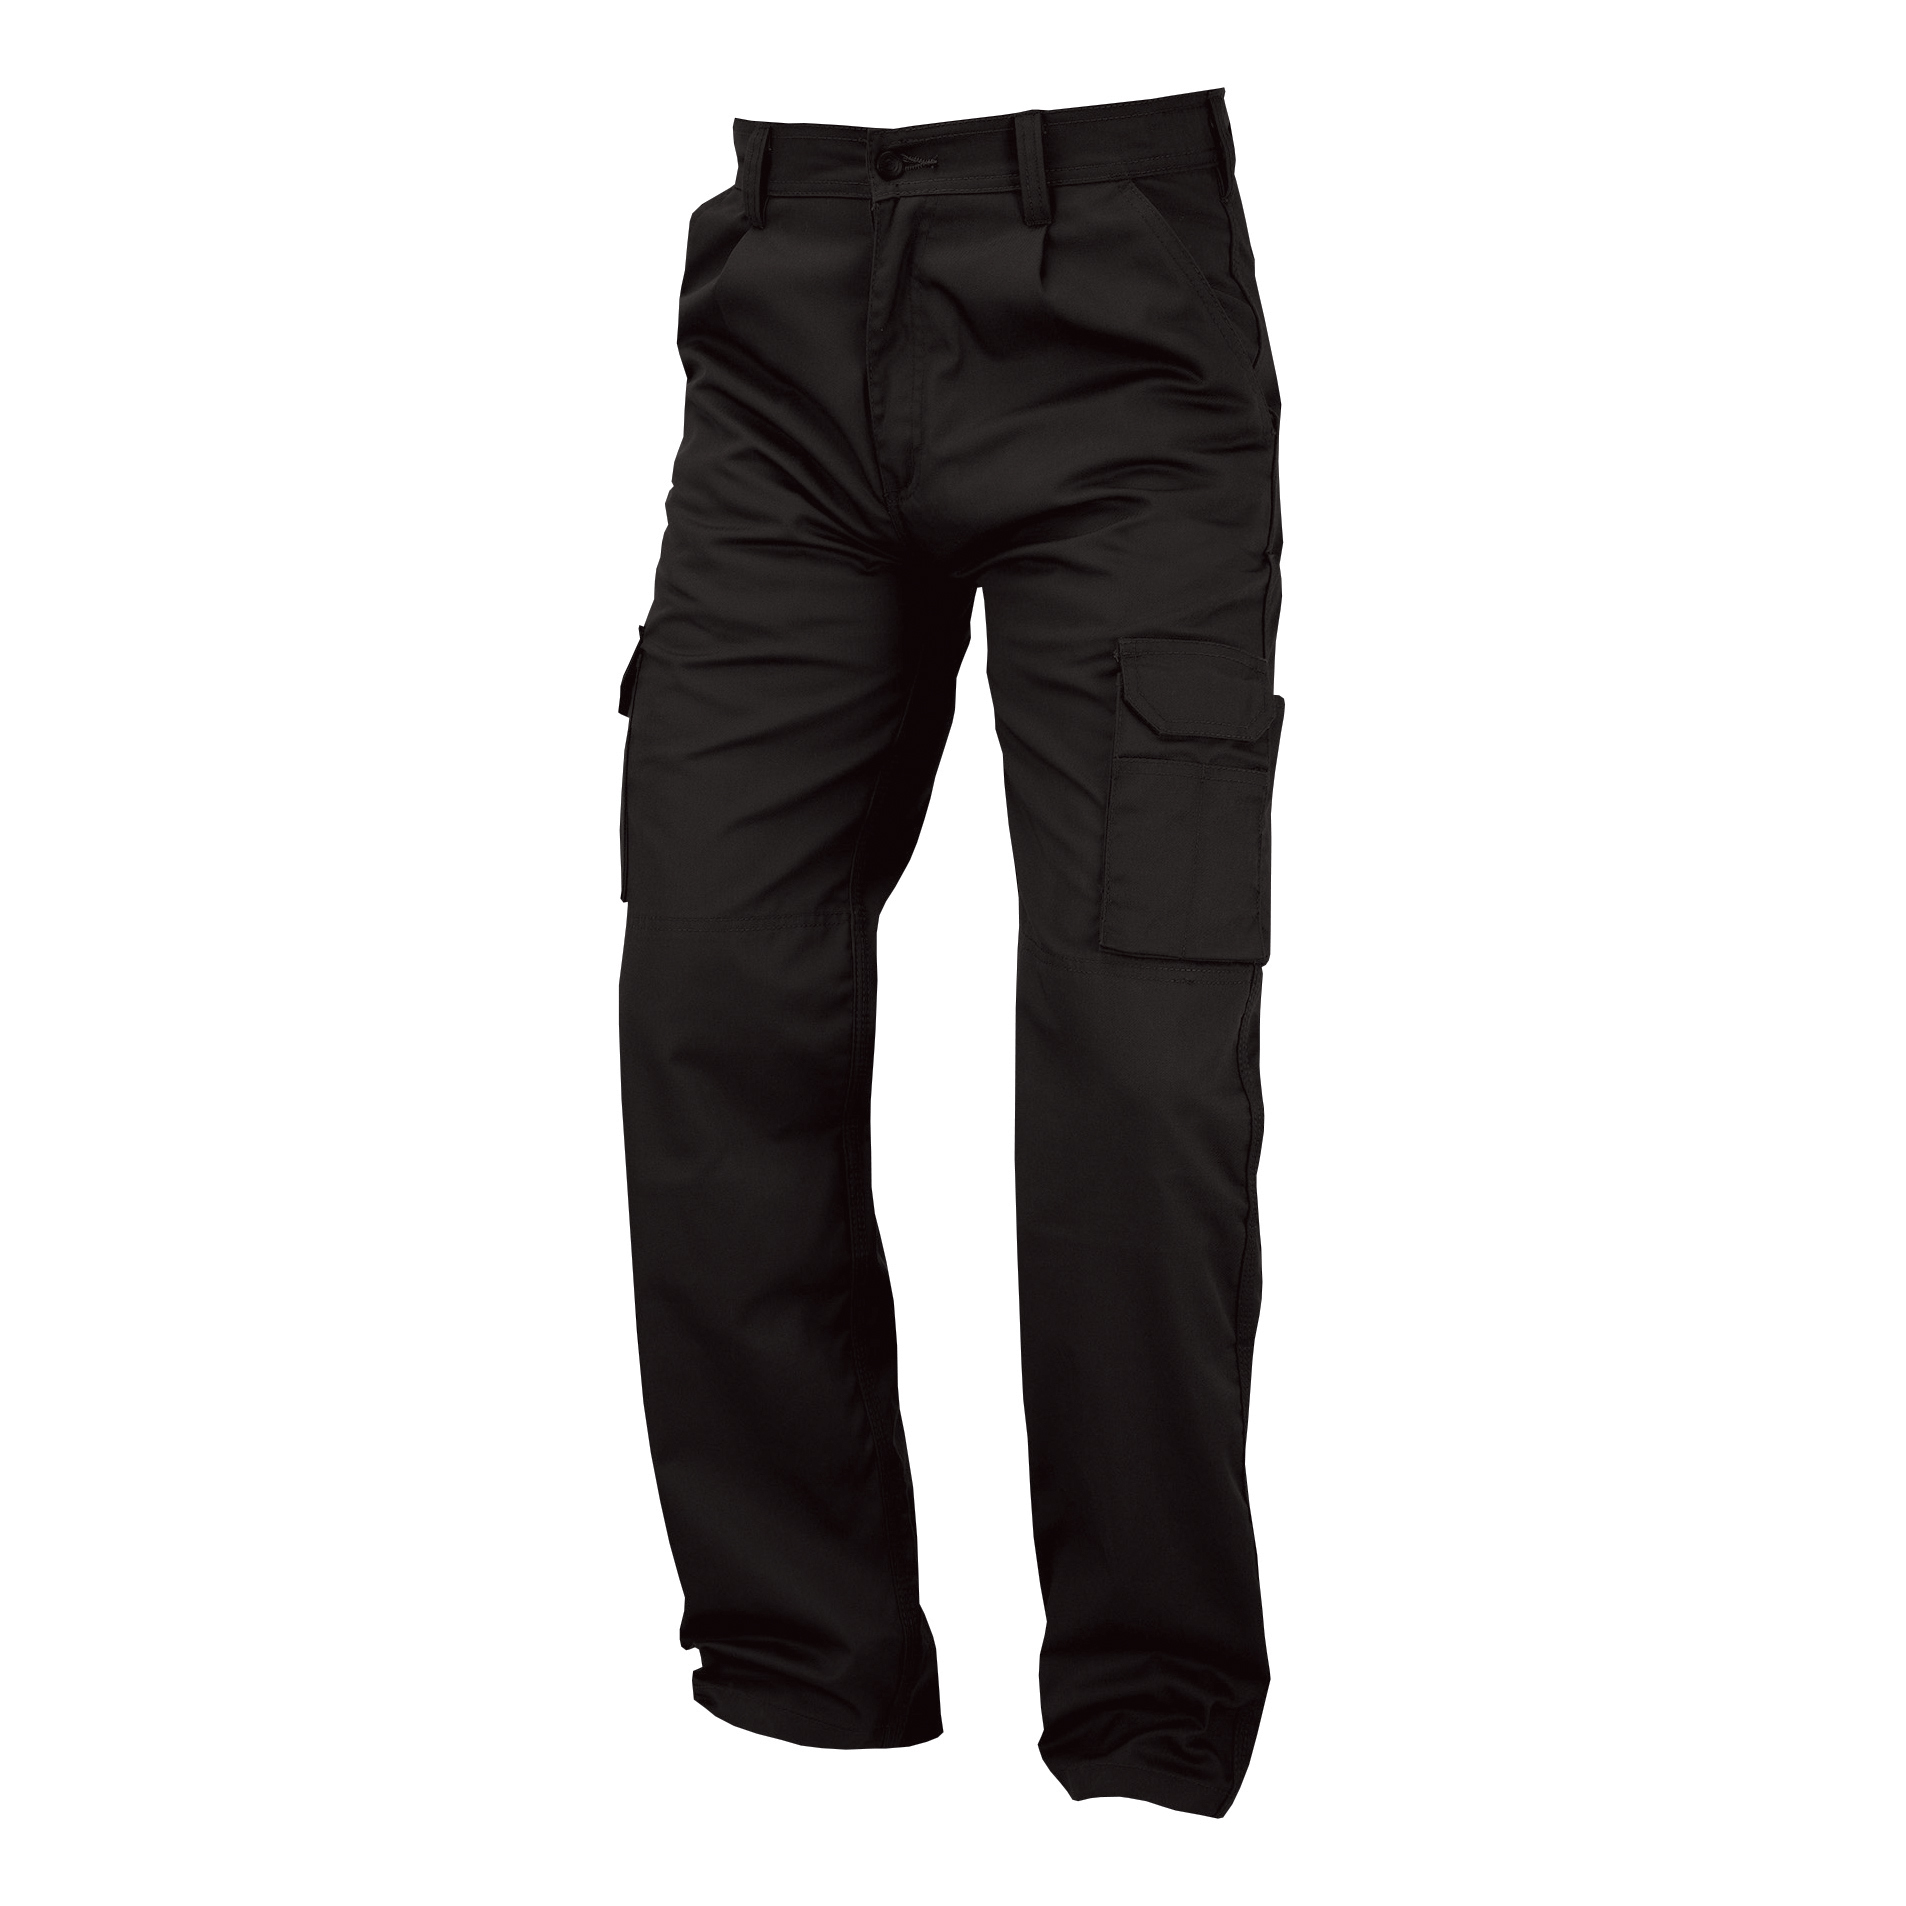 Combat Trousers Polycotton with Pockets Size 32in Long Black Ref PCTHWBL32T *1-3 Days Lead Time*